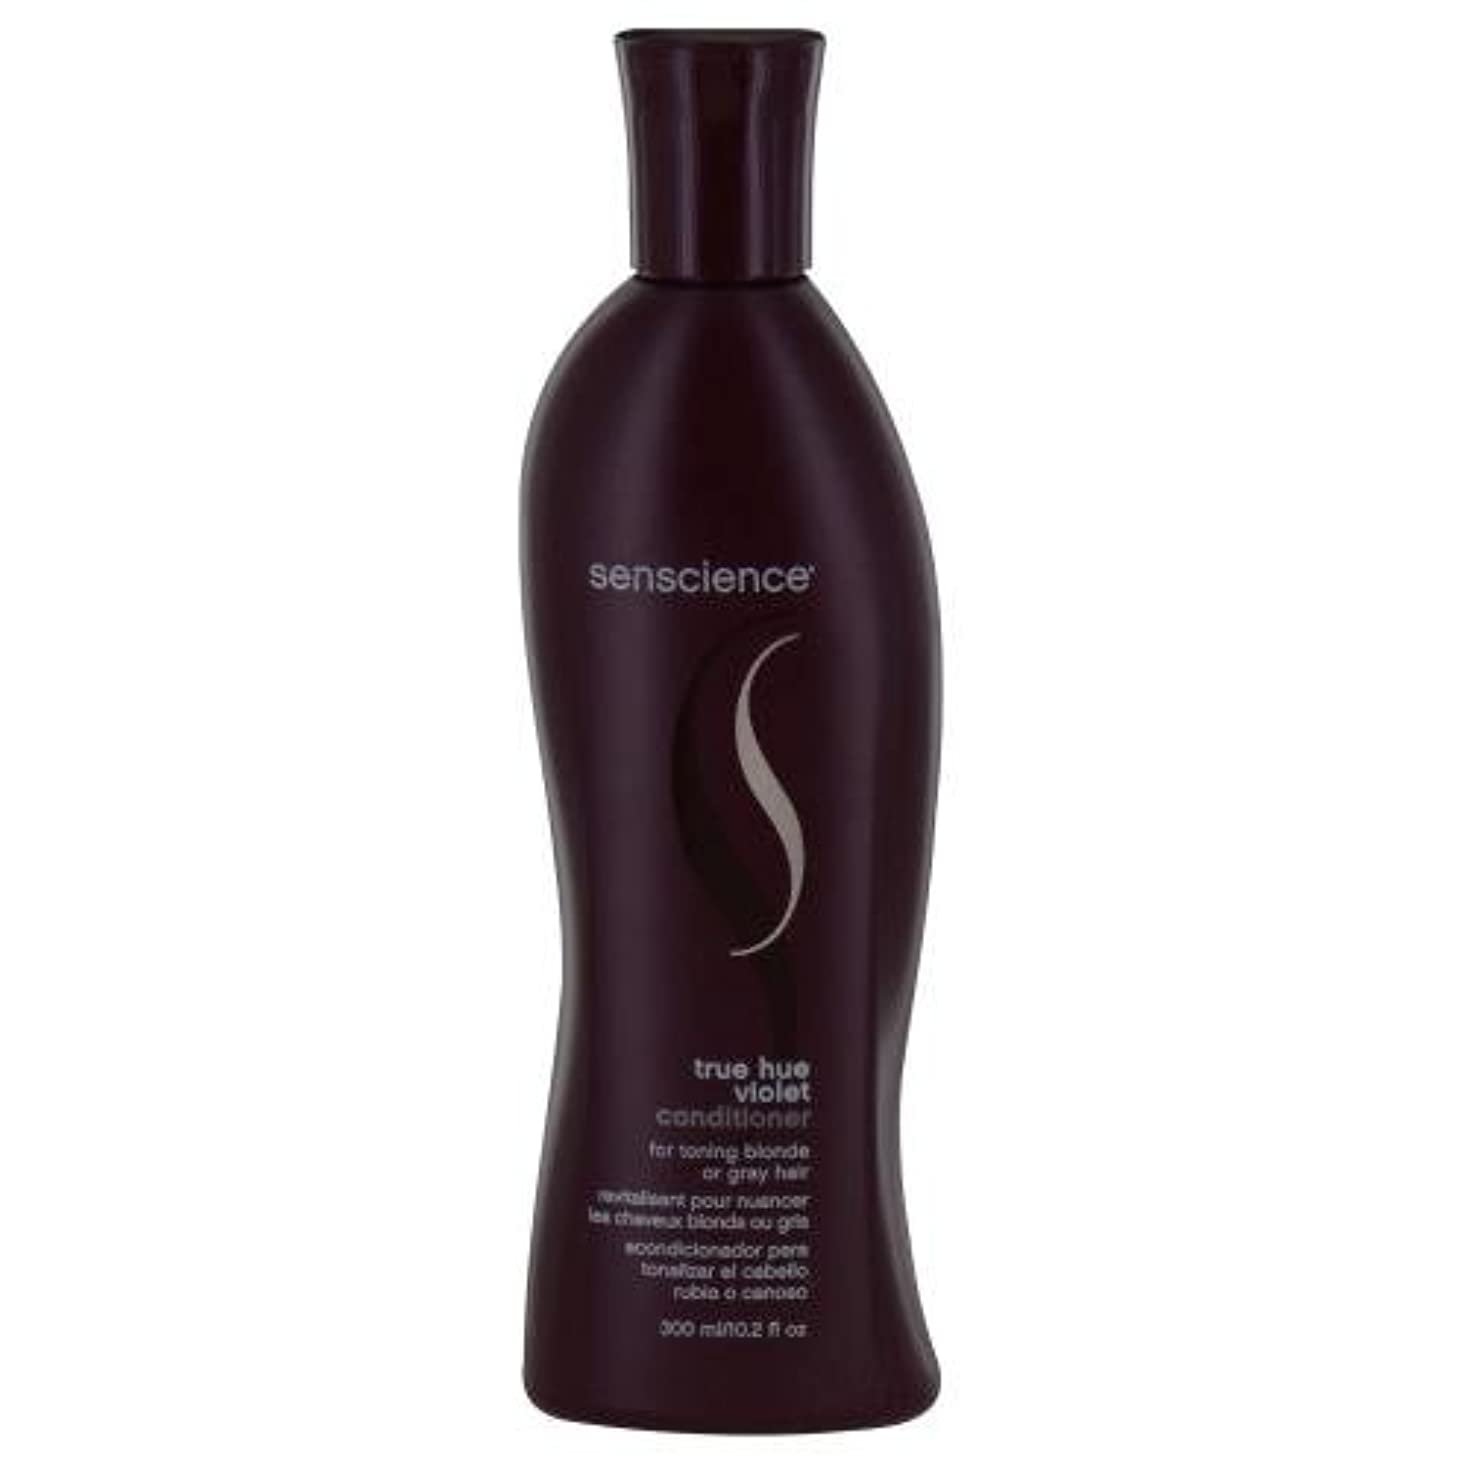 ハード条約腐ったby Senscience TRUE HUE VIOLET CONDITIONER (TONING BLONDE/GREY HAIR) 10.2 OZ by SENSCIENCE